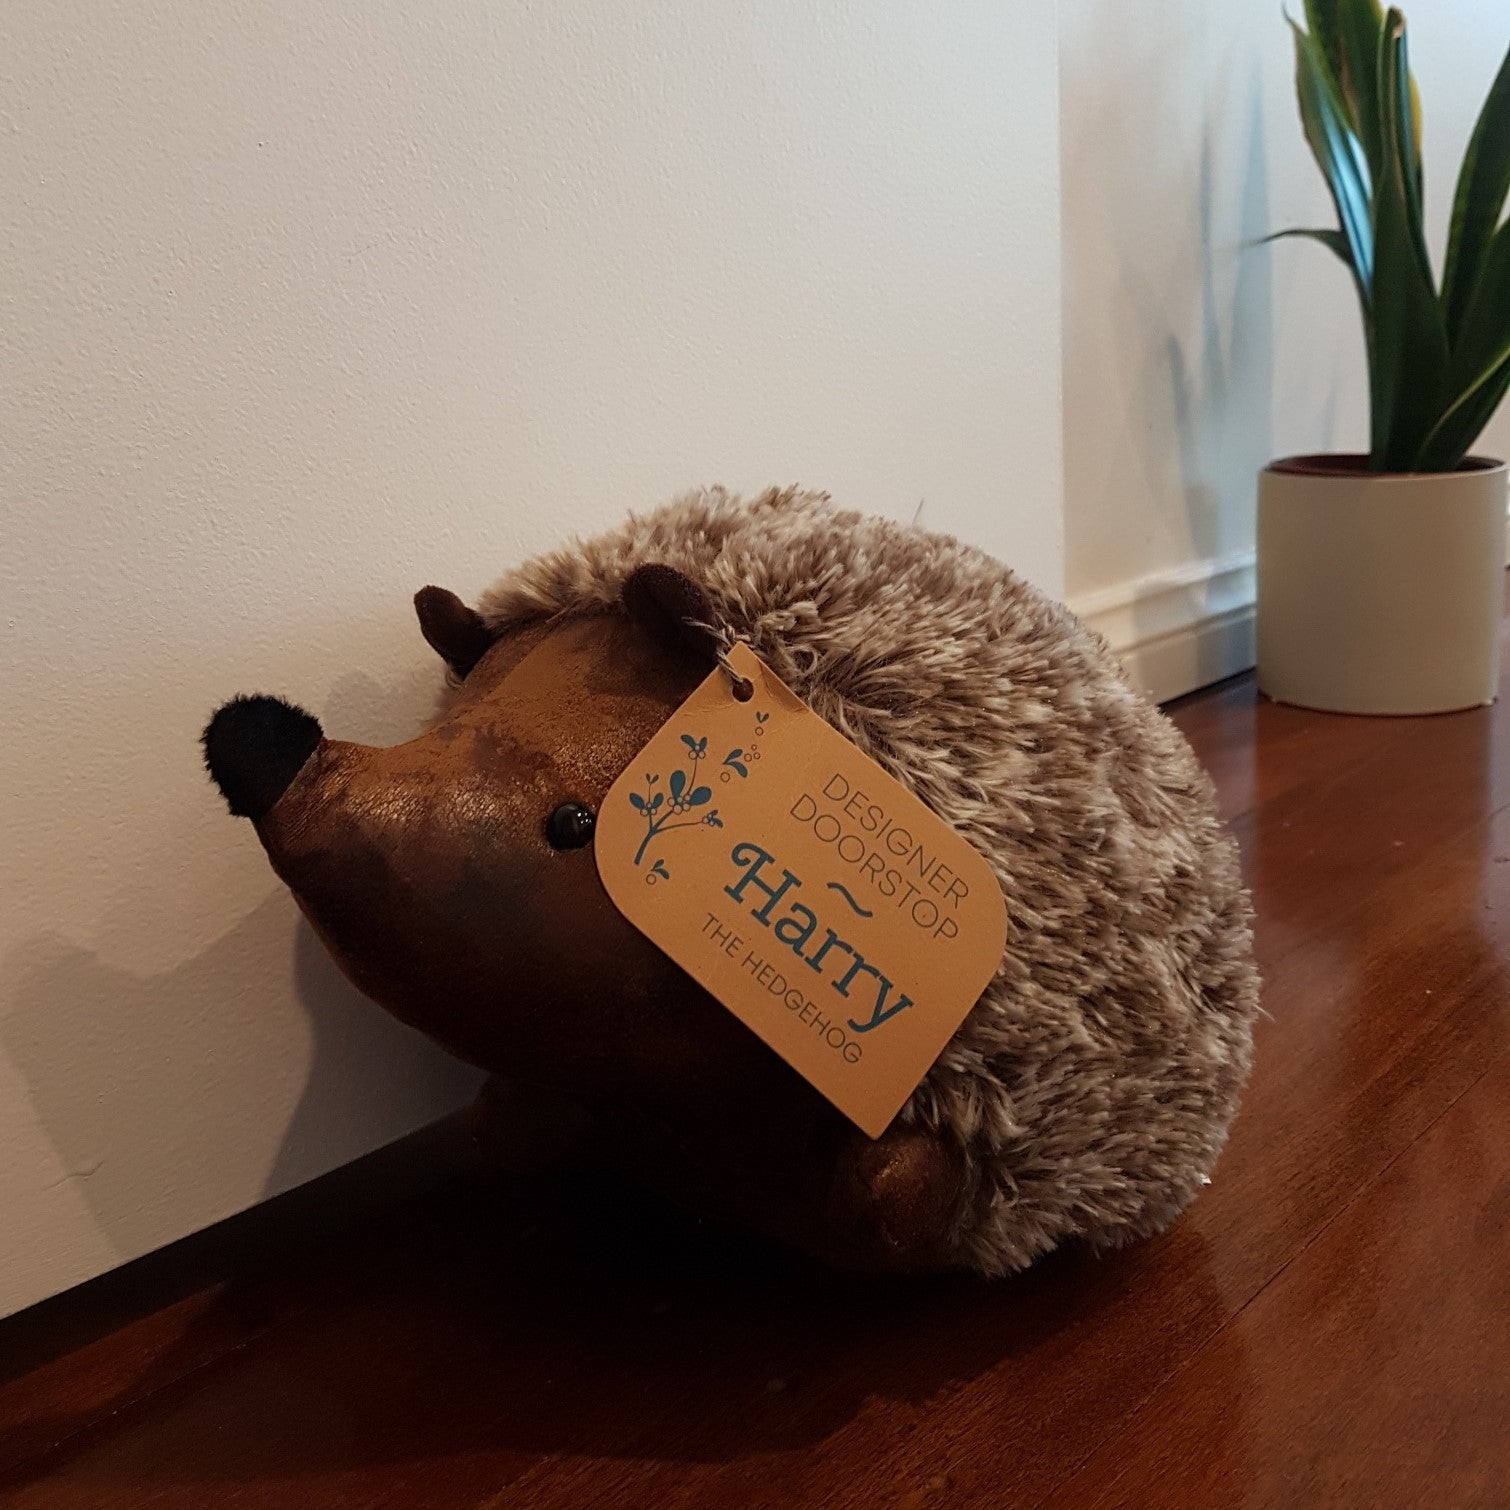 Designer Doorstop - Harry the Hedgehog